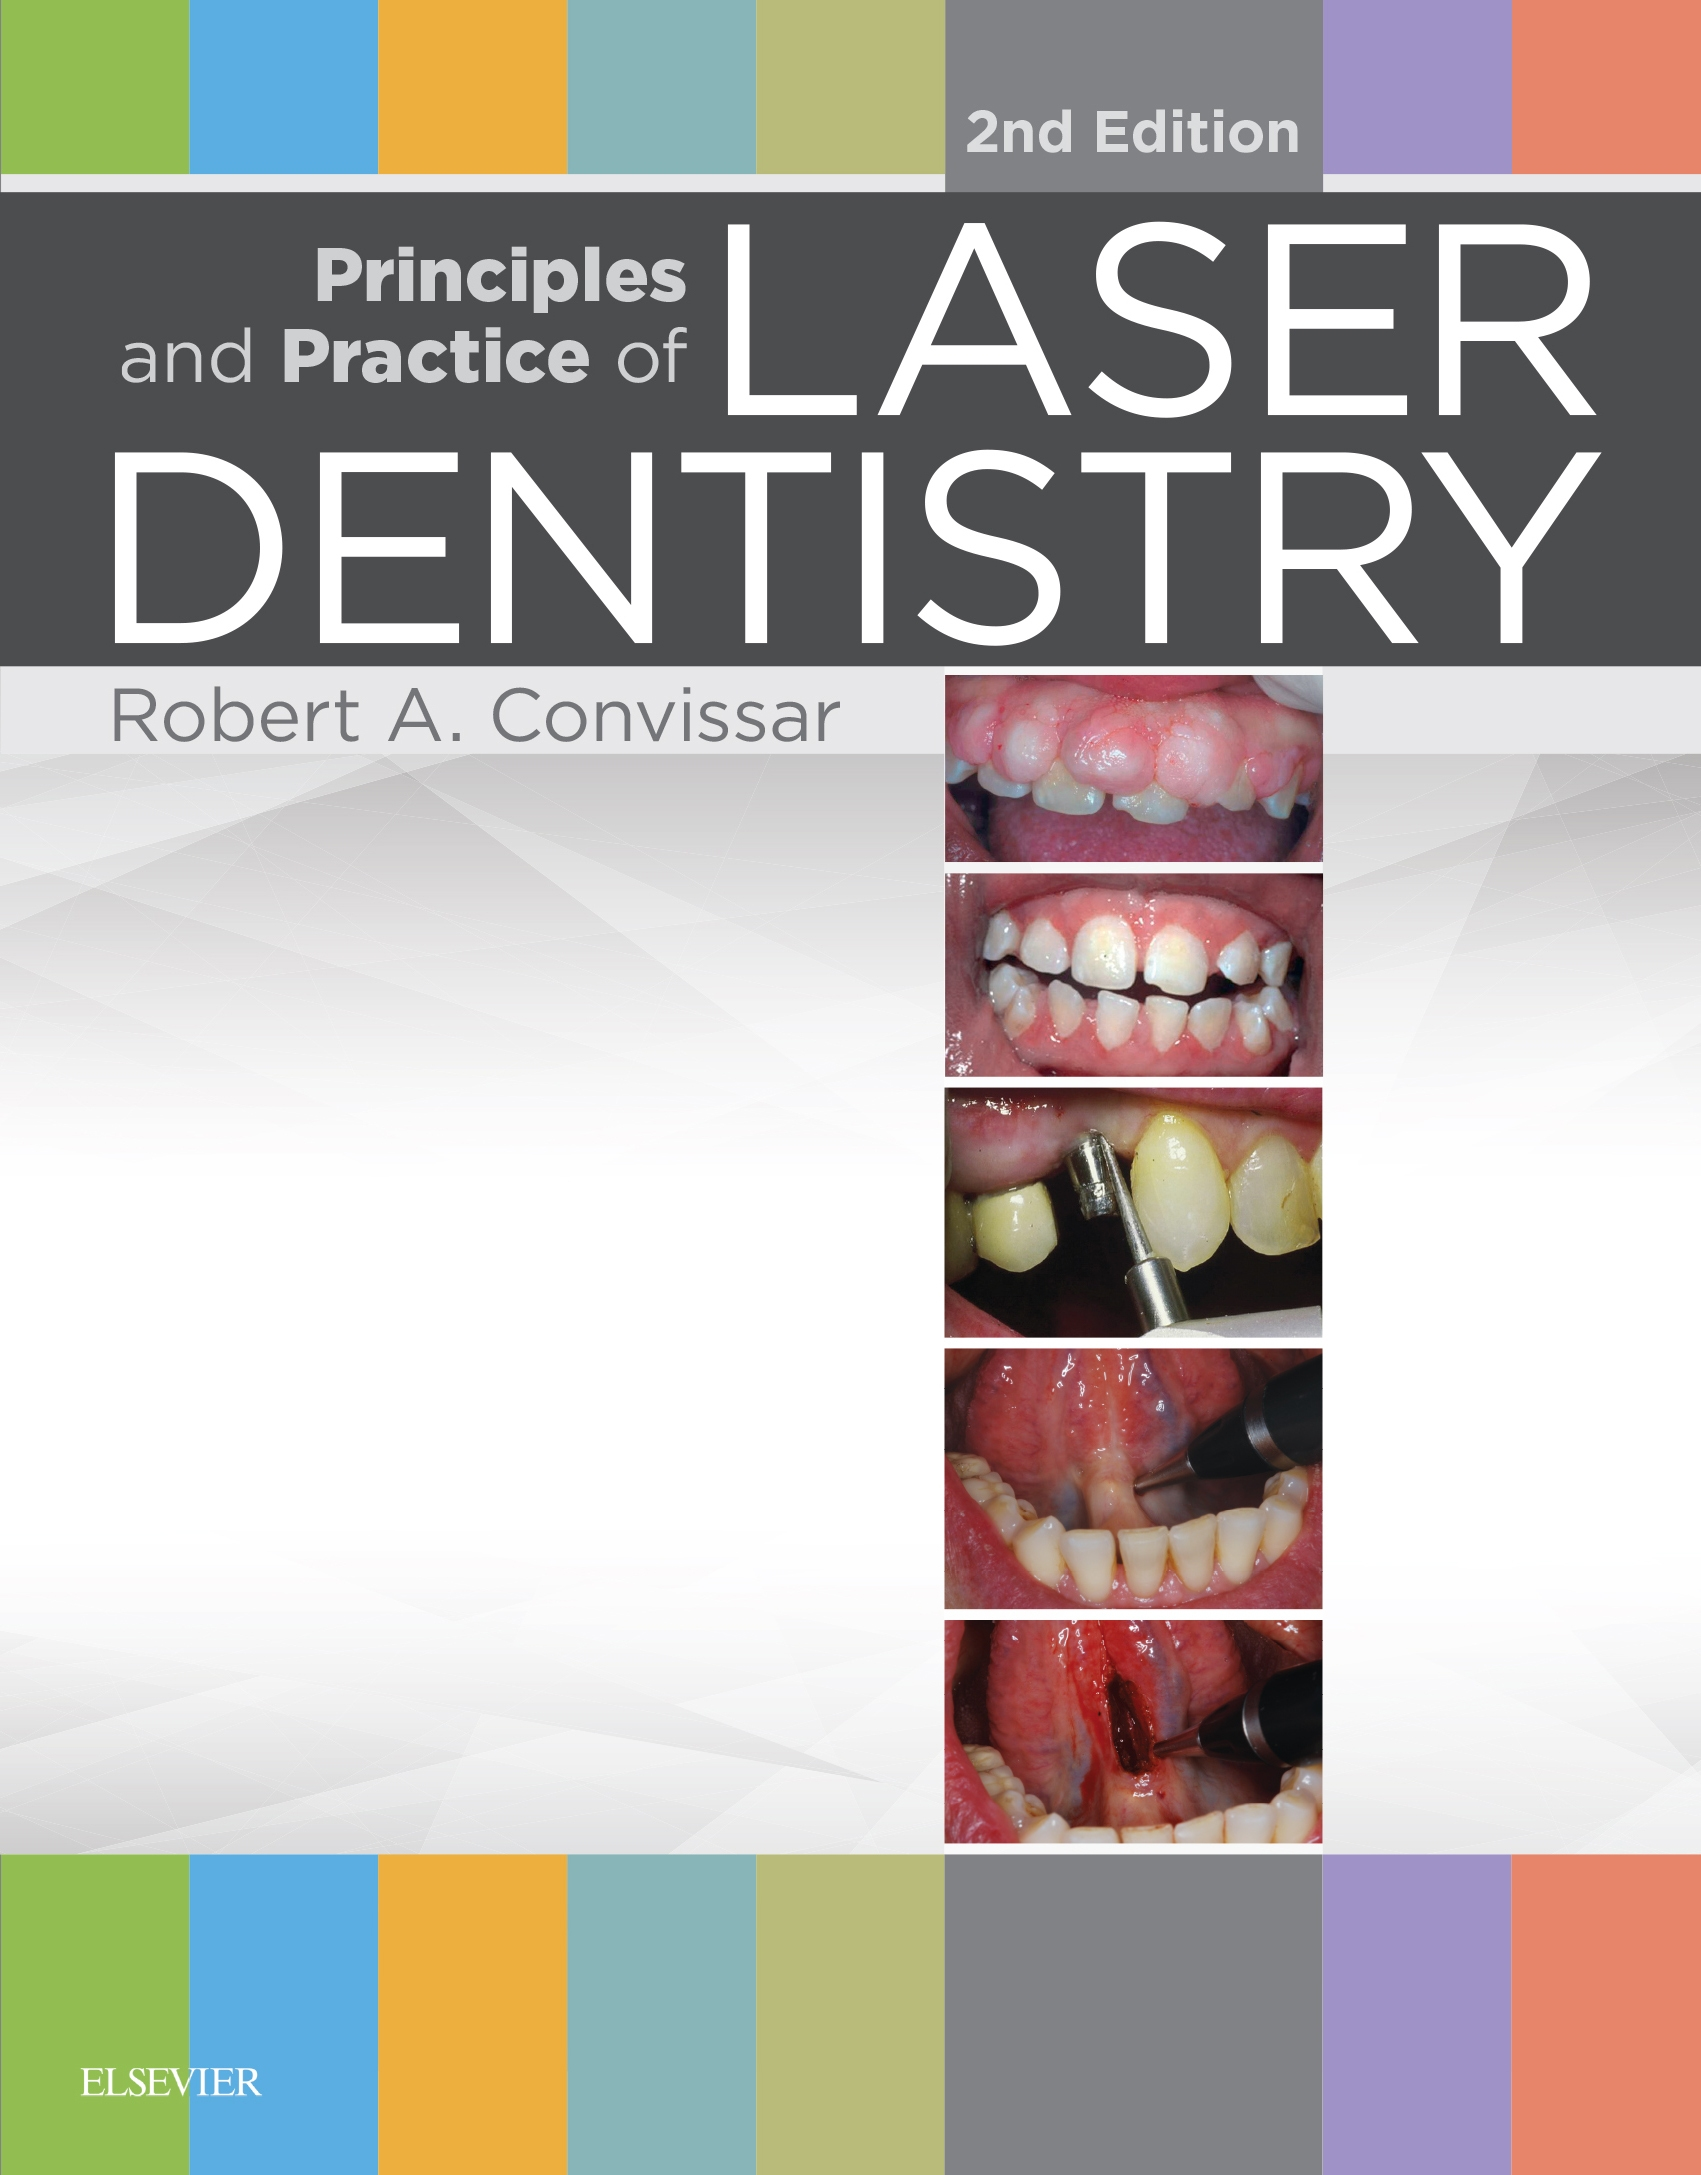 Principles and Practice of Laser Dentistry اشراقیه افست